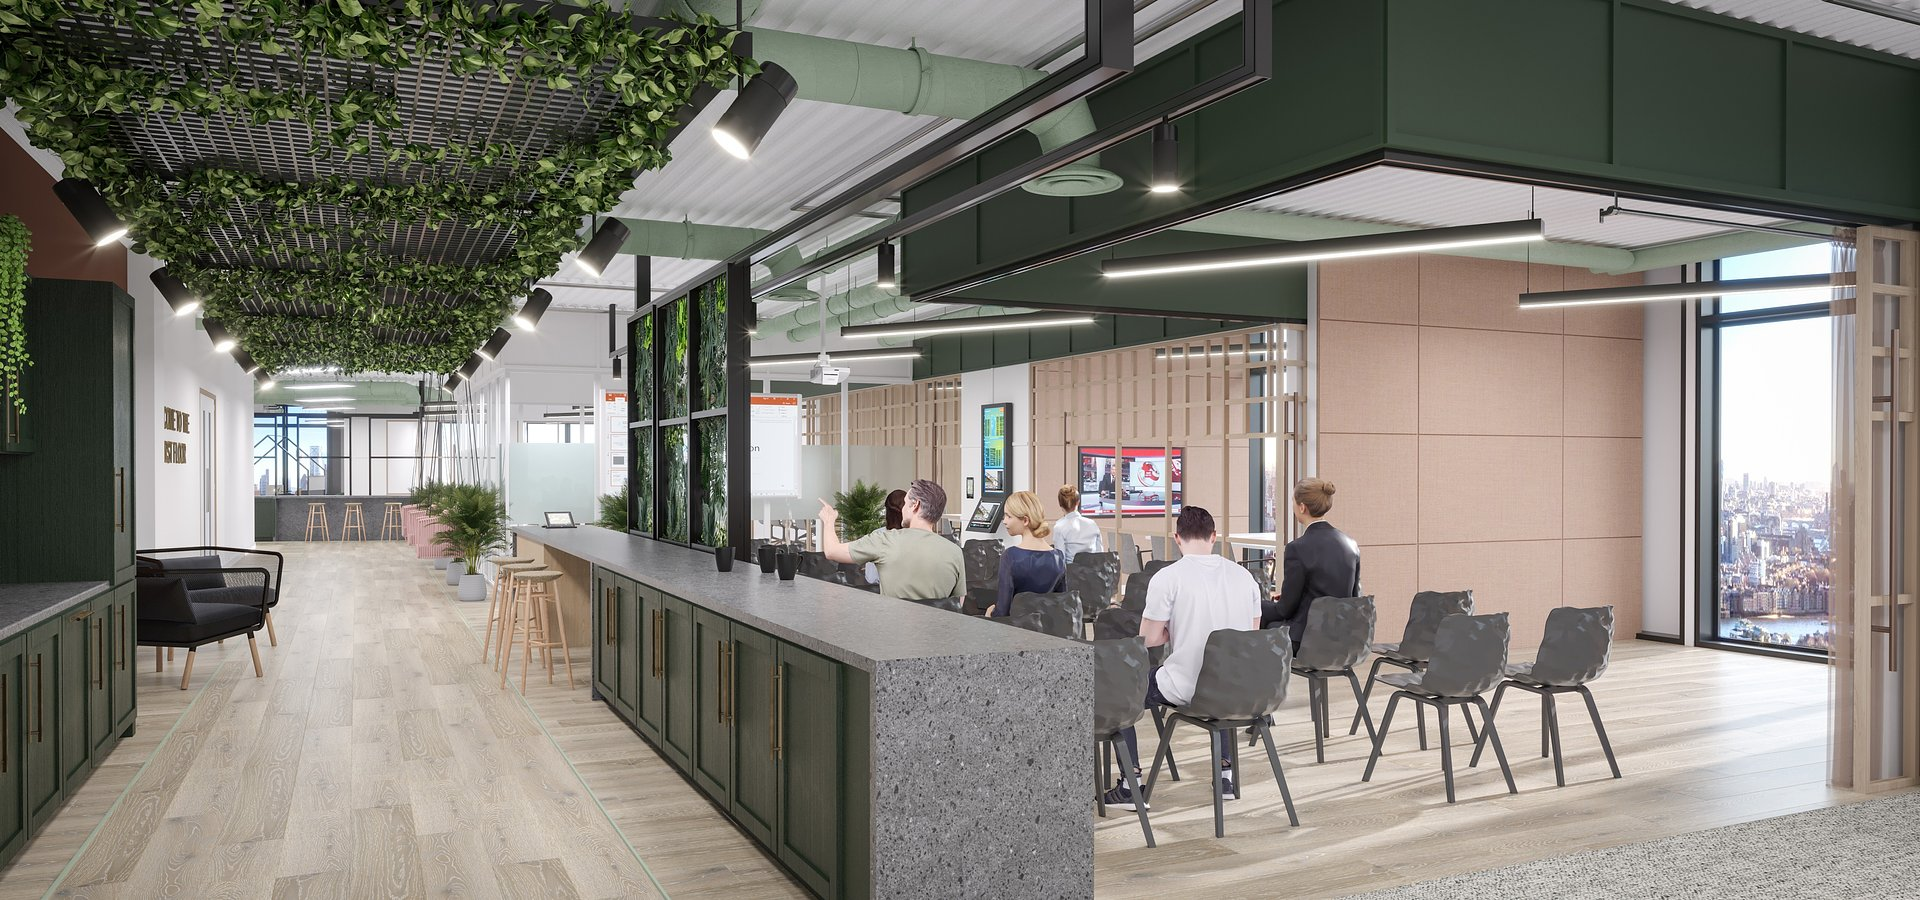 HB Reavis launches new 'ready to work' tech office space at flagship BloomClerkenwell